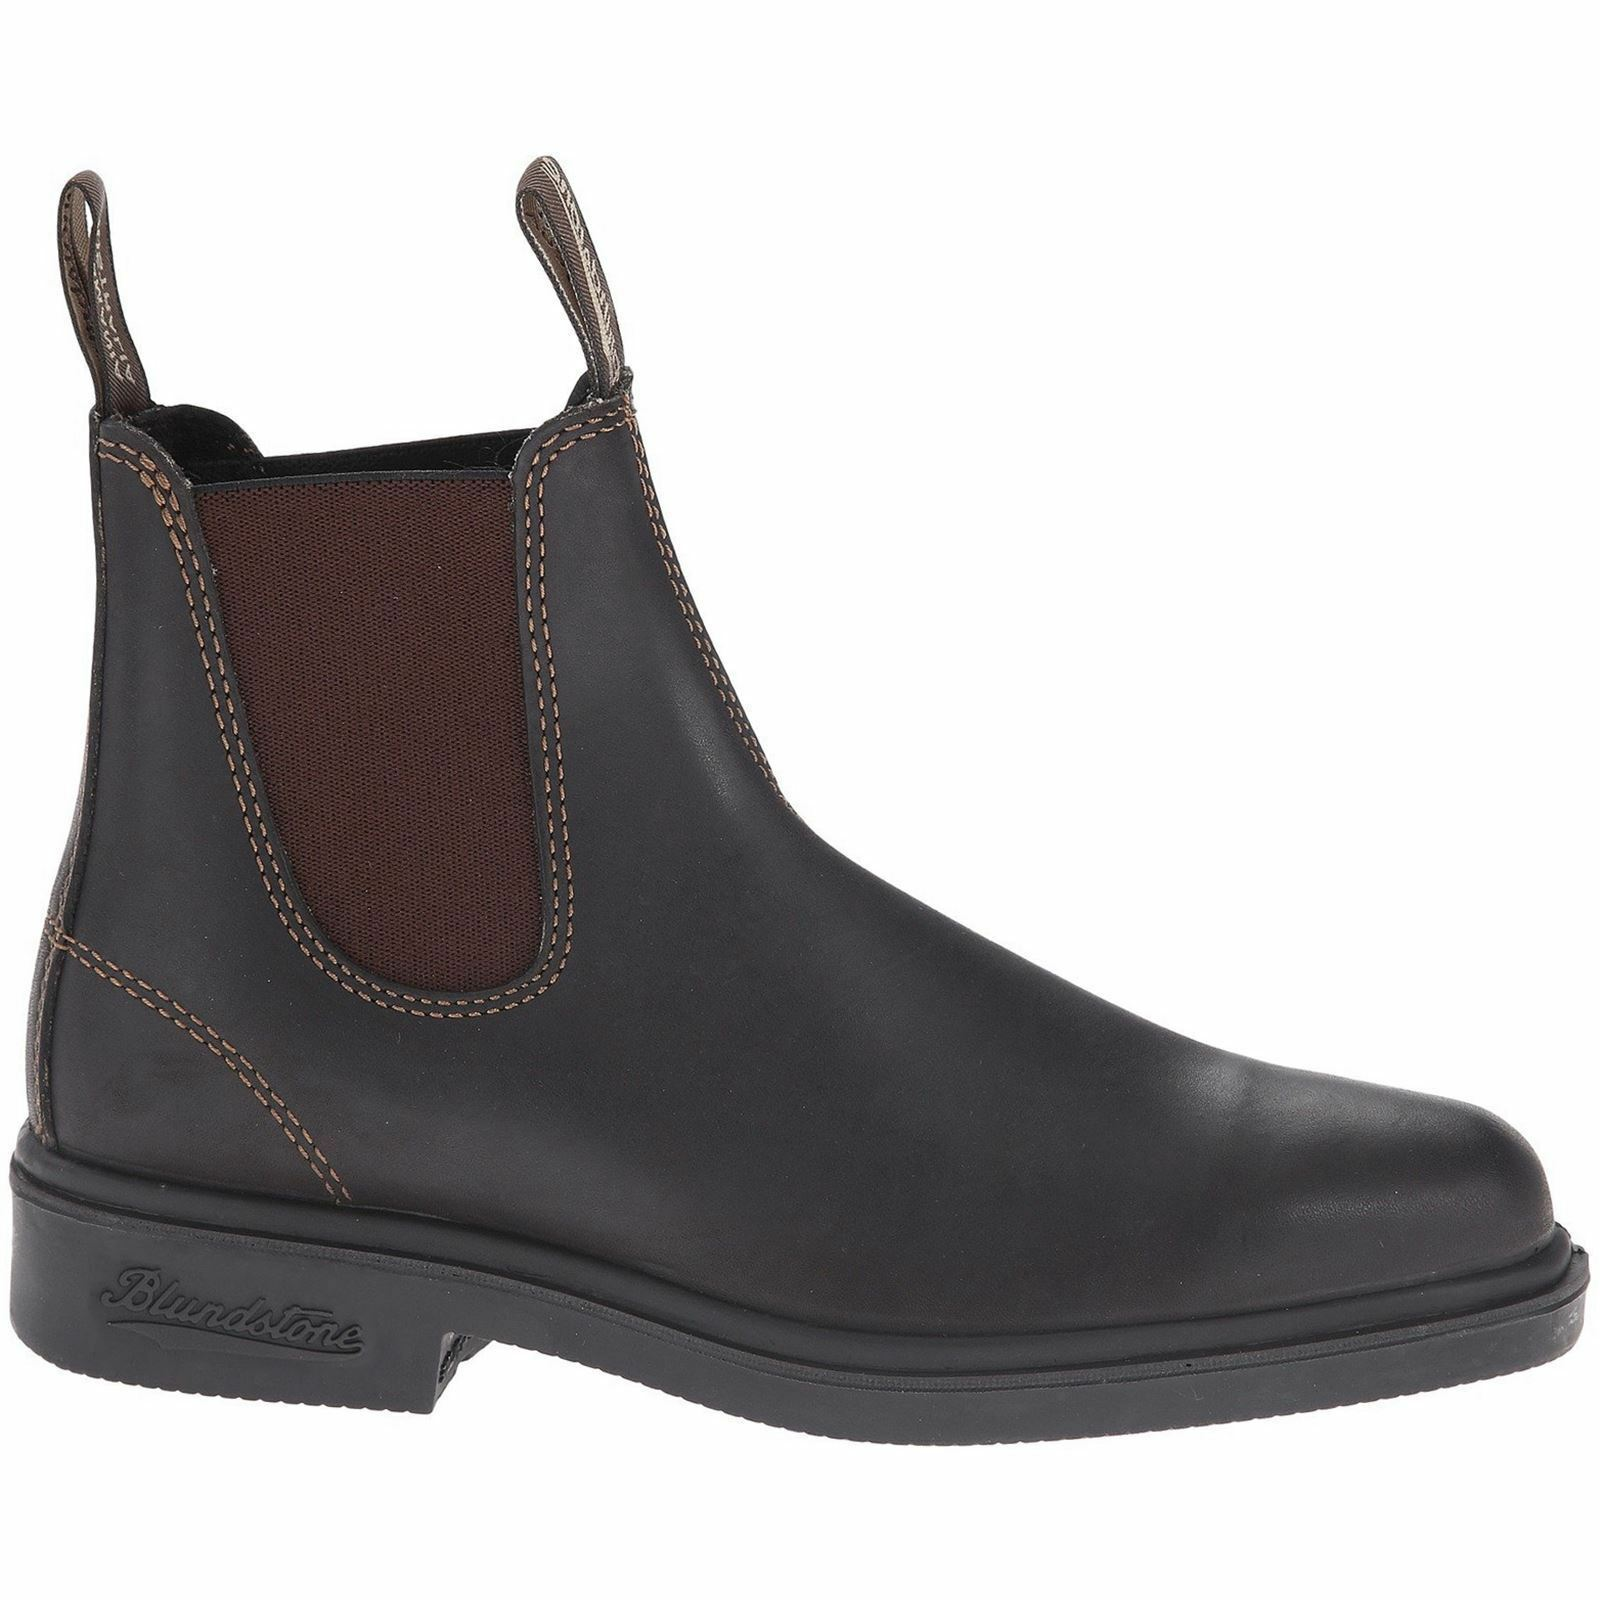 Blundstone 062 Stout Brown Unisex Leather Square-toe Ankle Slip-on Chelsea Boots